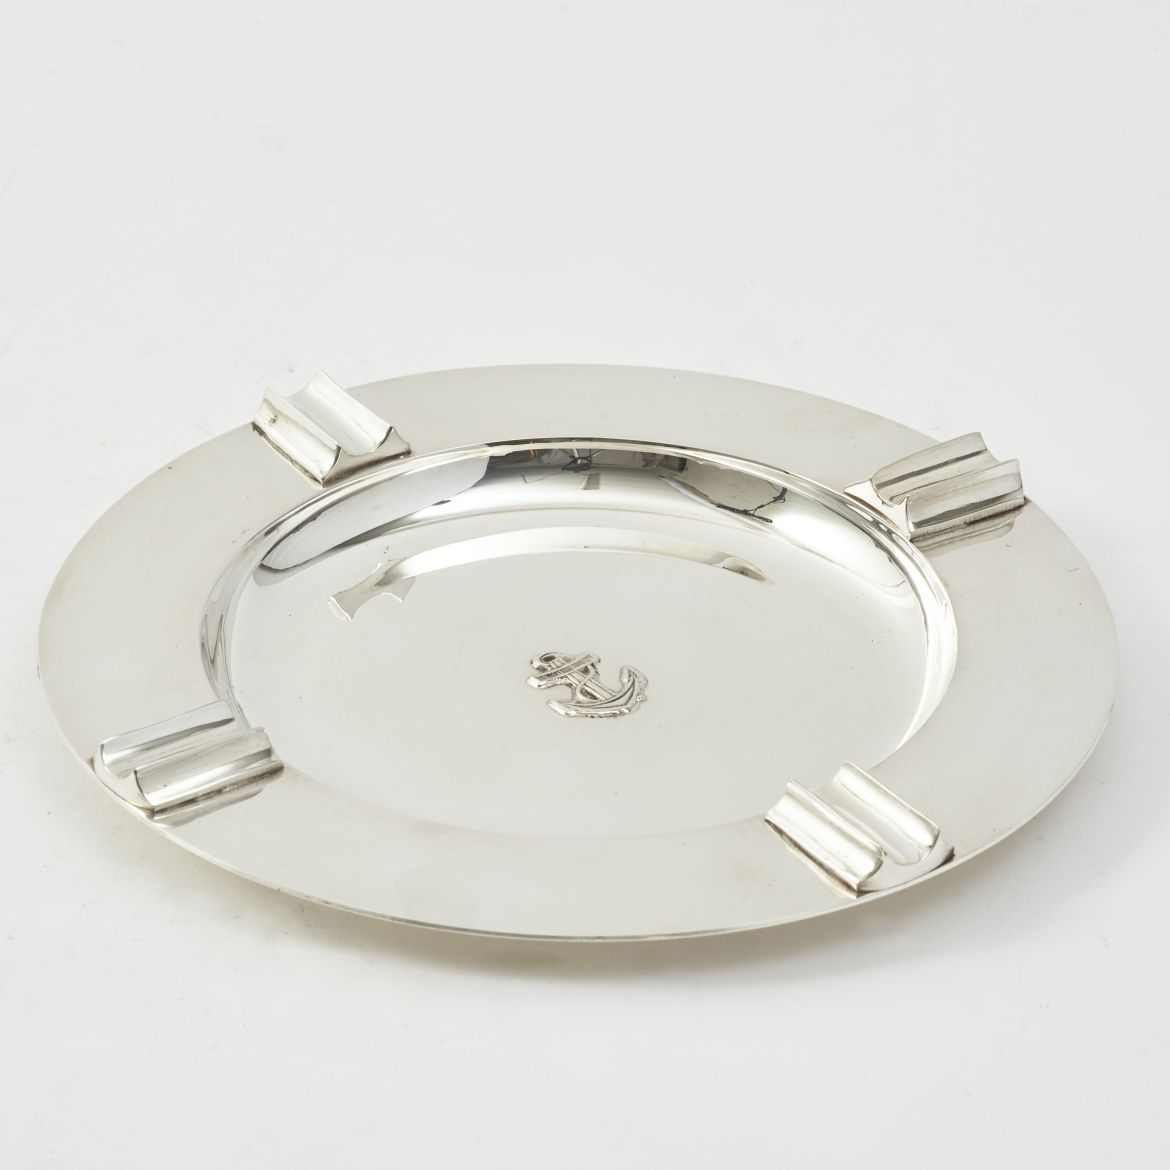 Circular Silver Plate Ashtray